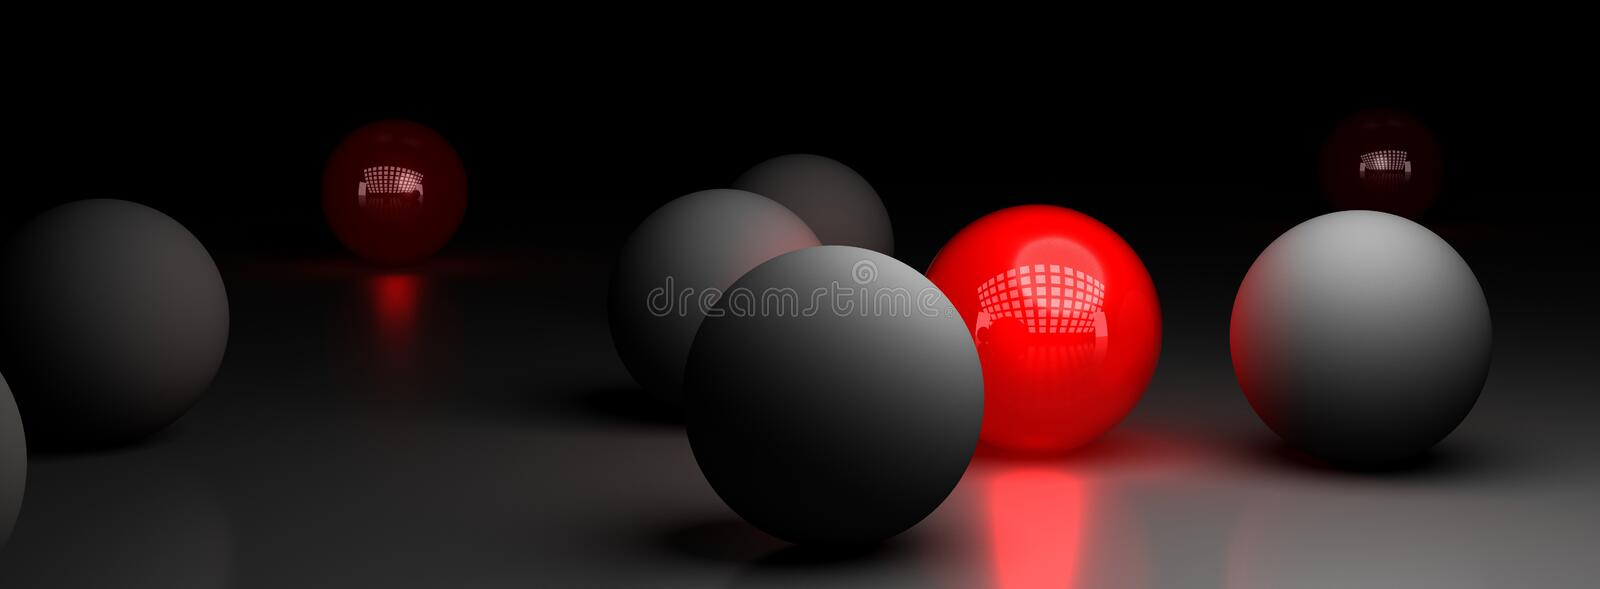 Download Uniqueness, Be Different Background Over Black Stock Photography - Image: 27940362